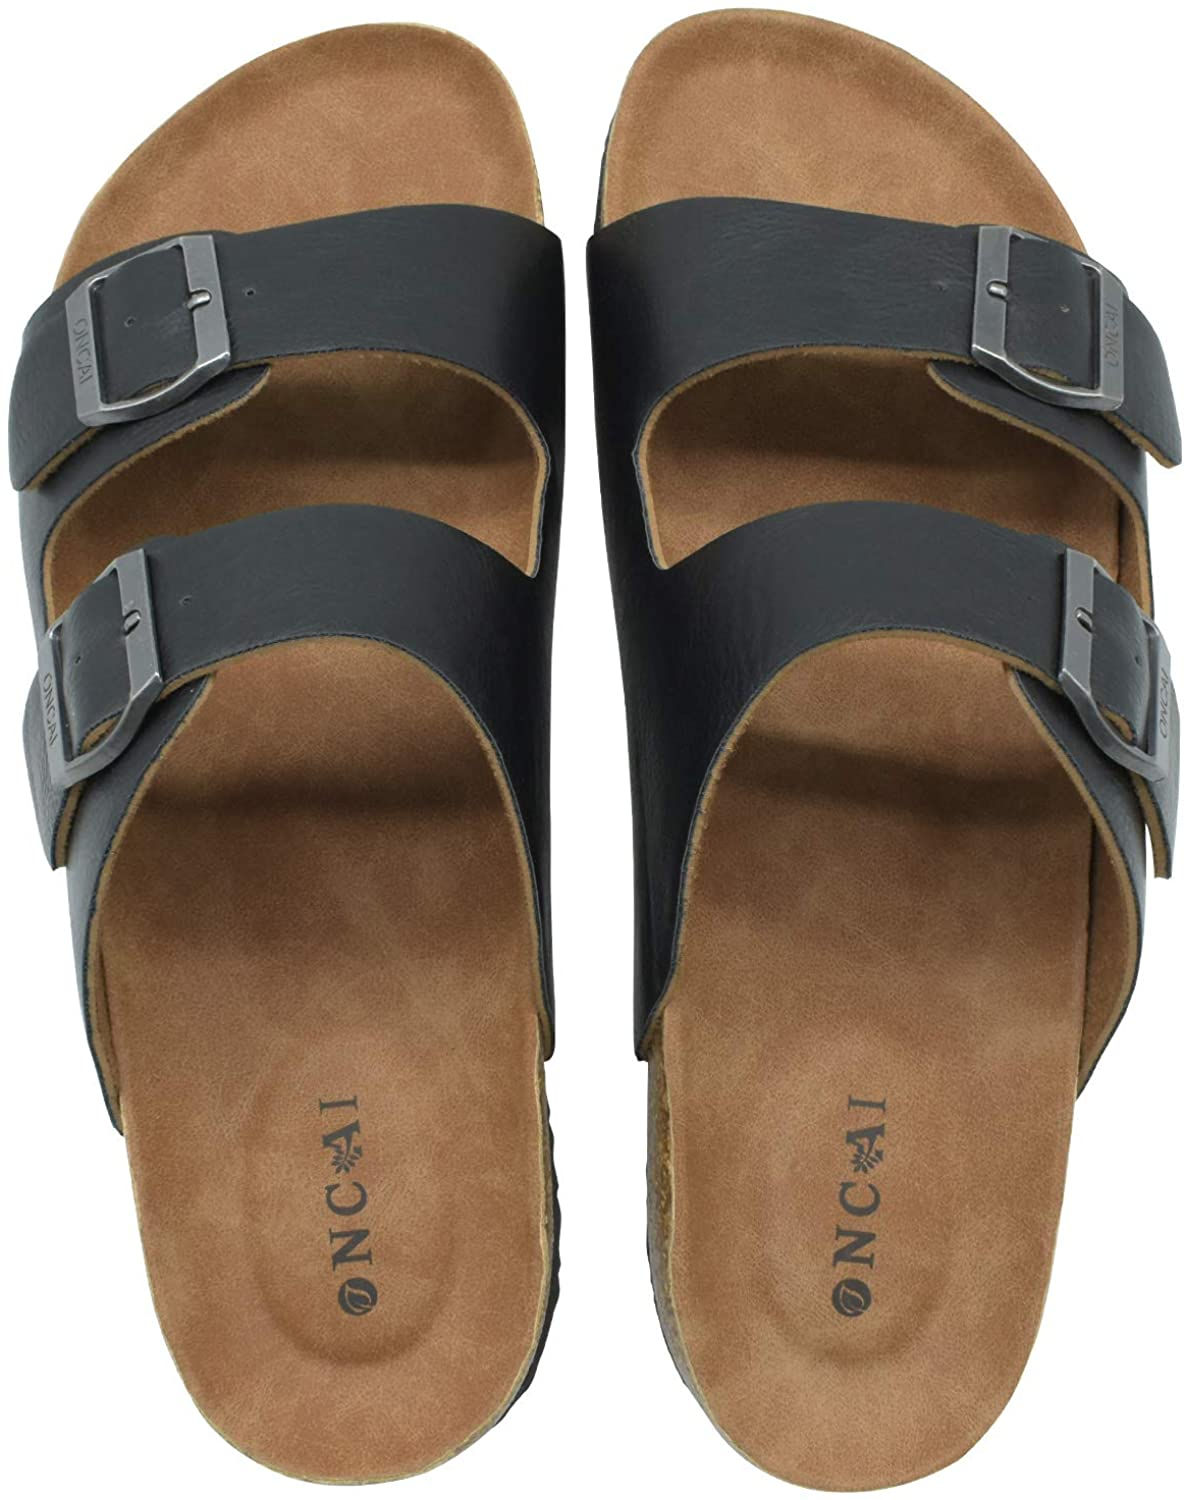 ONCAI Men's-Slide-Sandals-Beach-Slippers-Arizona Slippers Shoes Indoor and Outdoor Anti-skidding Flat Cork Sandals and Beach Slippers with Two Adjustable Straps